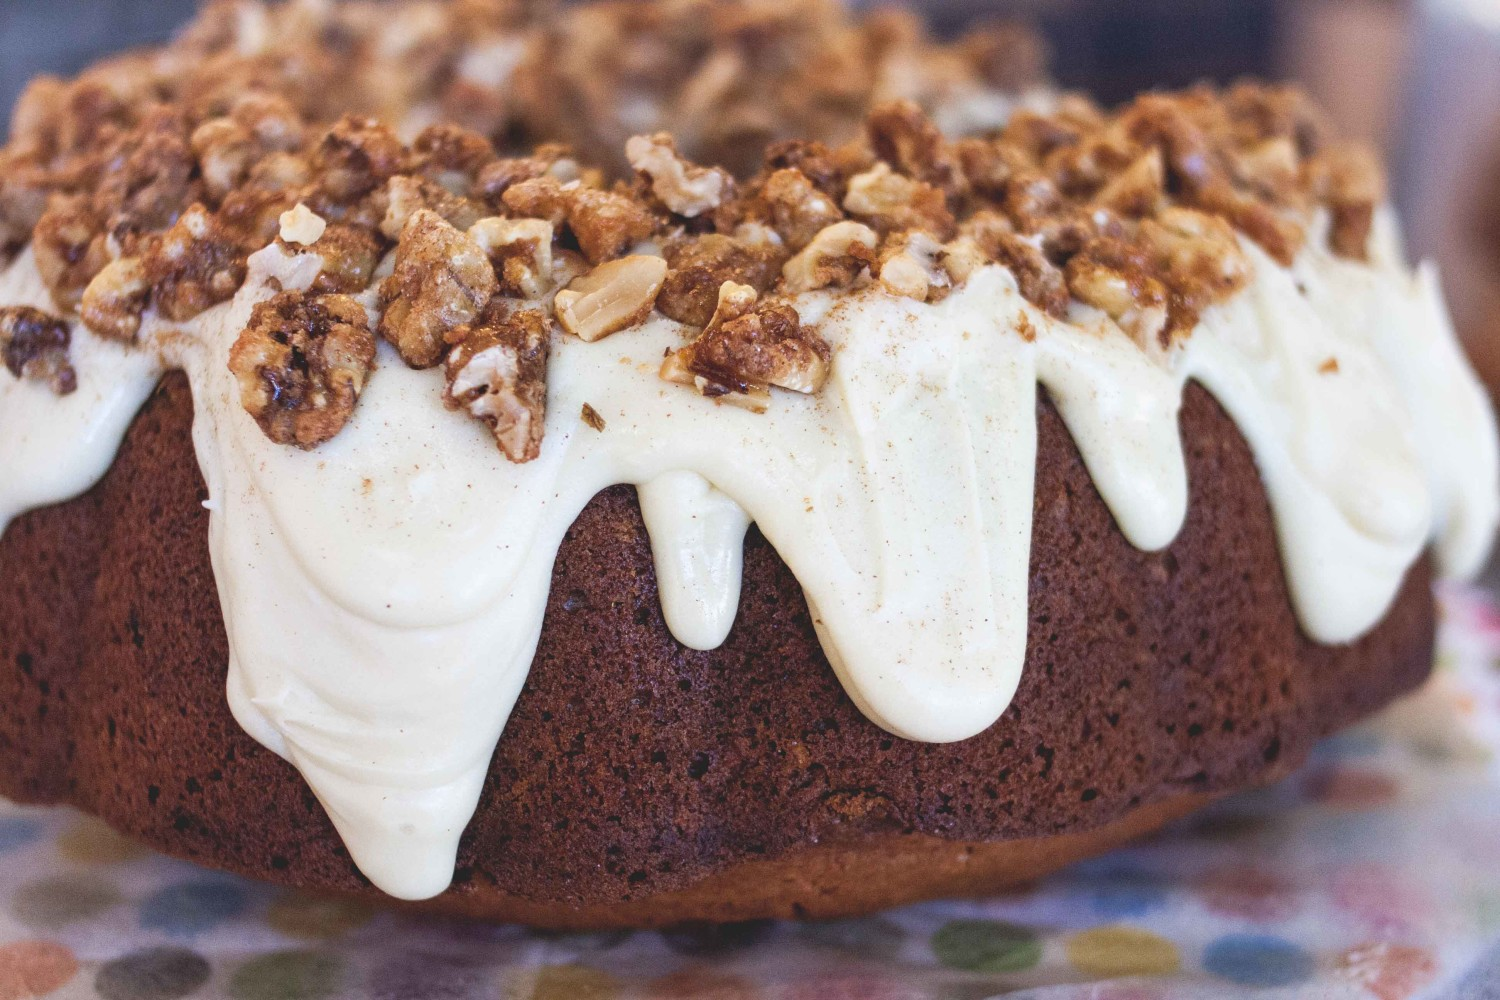 Butternut squash spice cake with white chocolate + maple ganache topped w/ candied maple walnuts